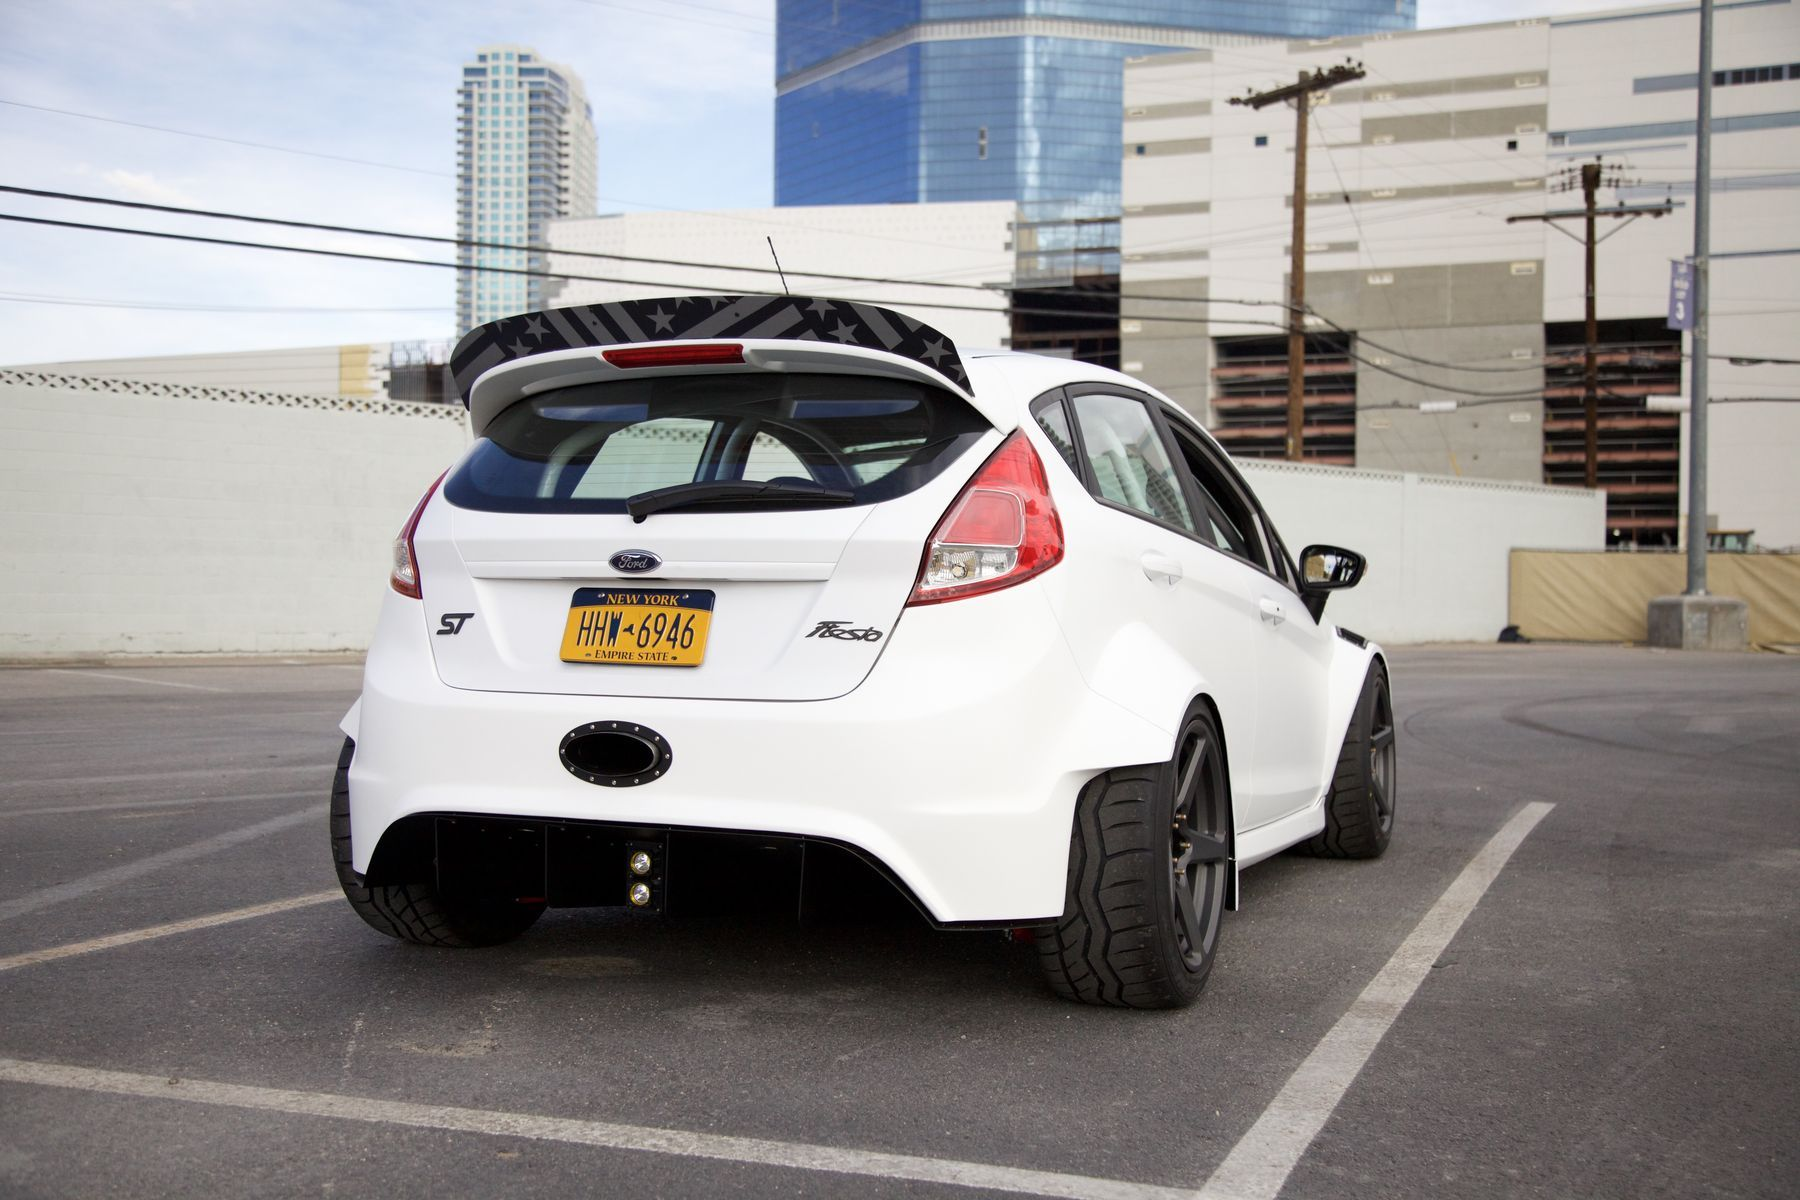 2016 Ford Fiesta St By Tucci Hot Rods Widebody Fordsema